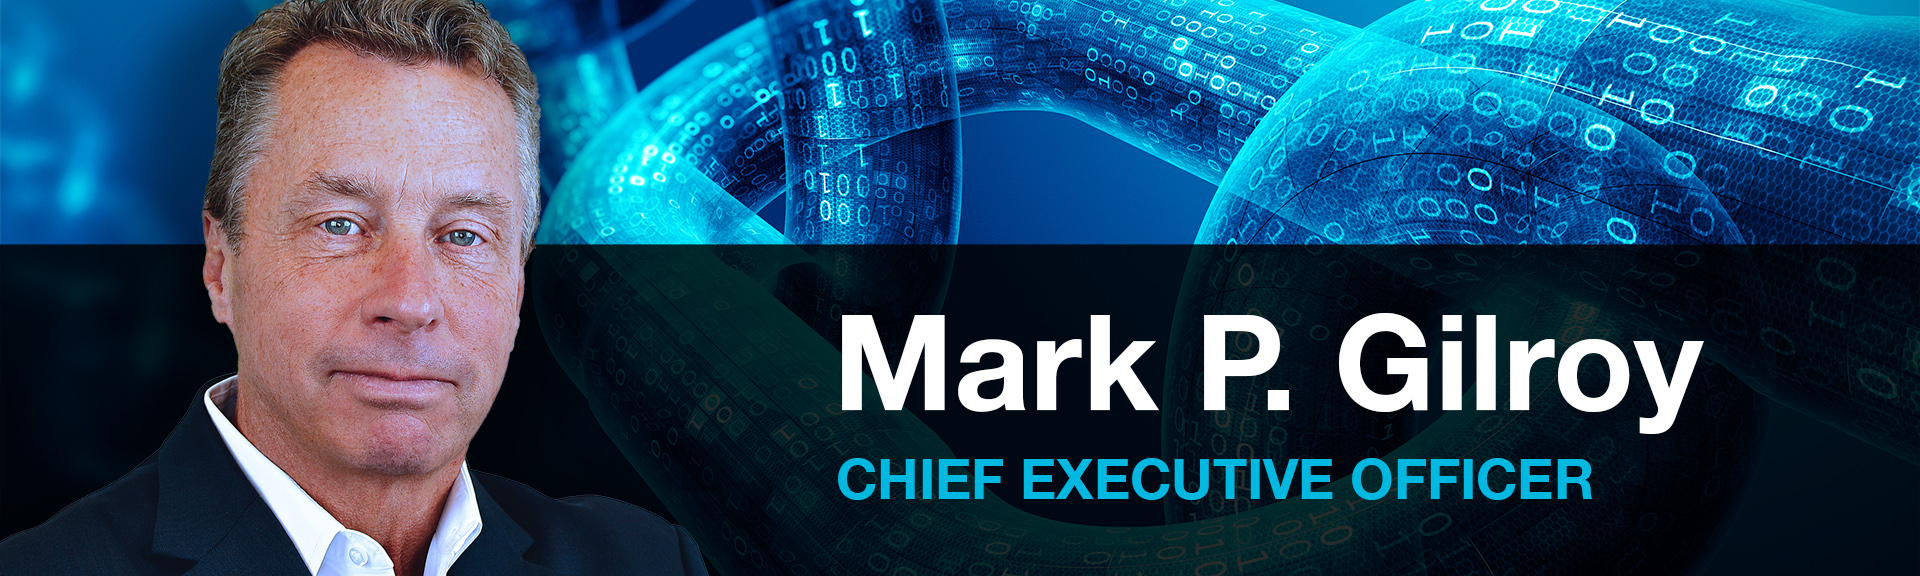 blog-mark-ceo